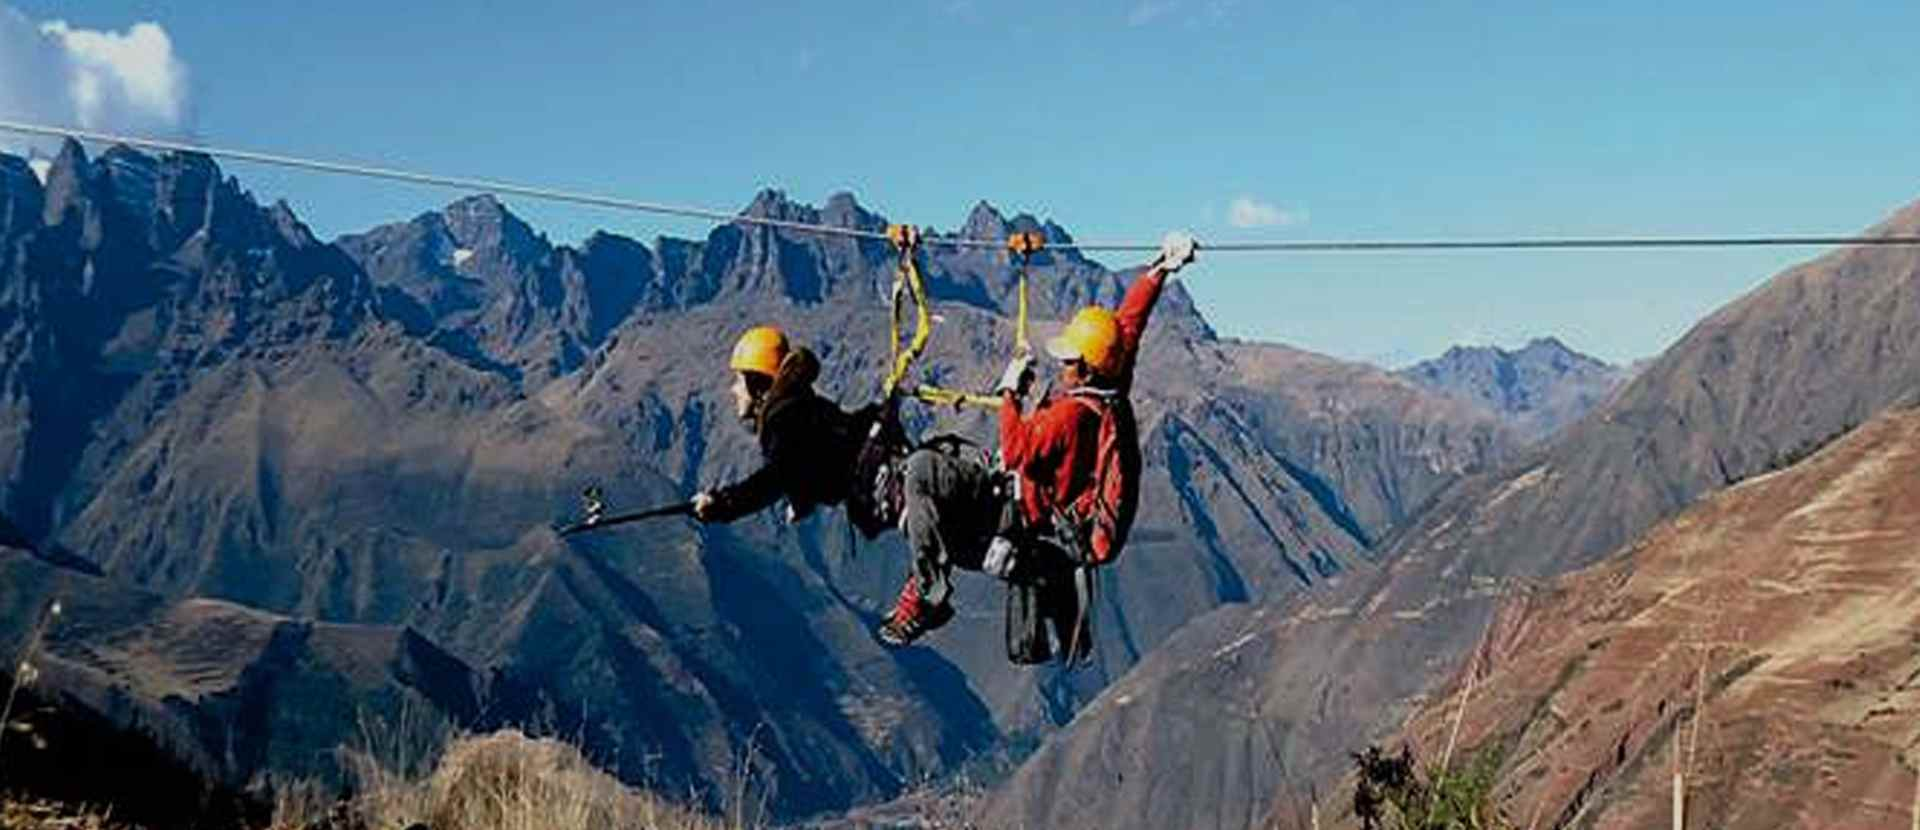 Inka Jungle Trek Zip Line Rafting 4 dias - Inka Jungle Trek